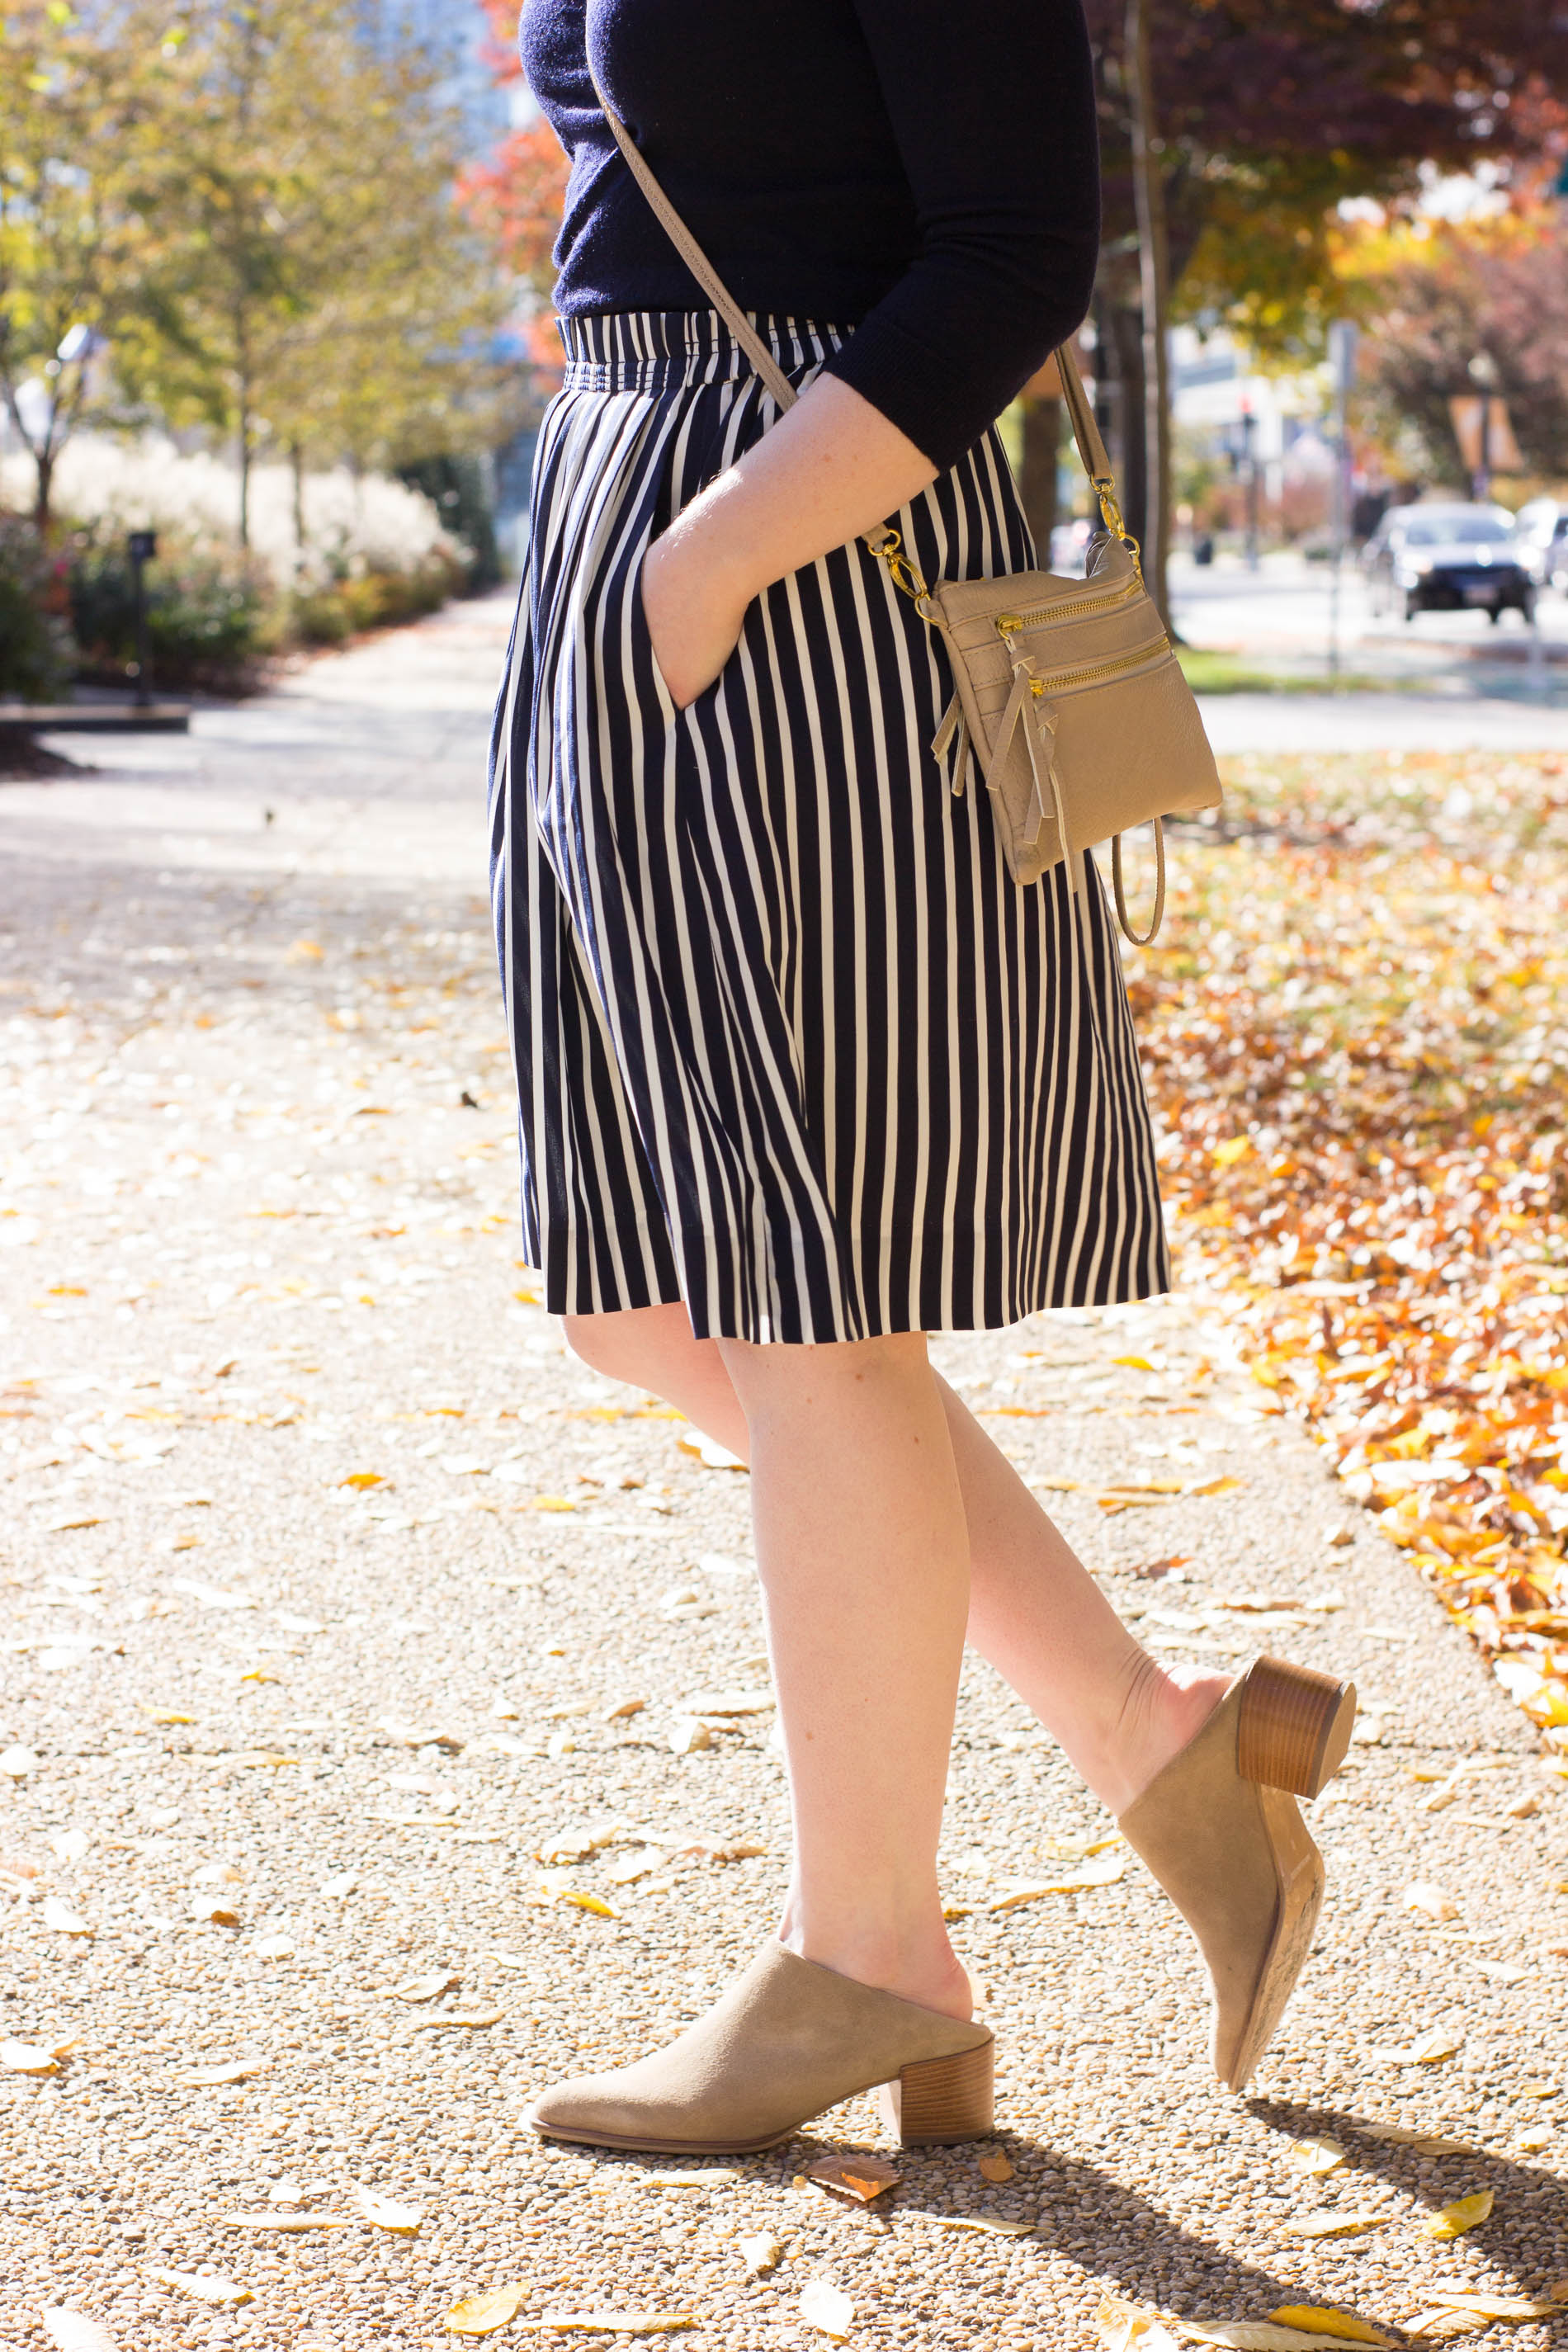 5 Easy Thanksgiving Outfit Ideas | Something Good, @danaerinw , everlane suede mules, heeled mules, striped skirt, midi skirt, crossbody bag